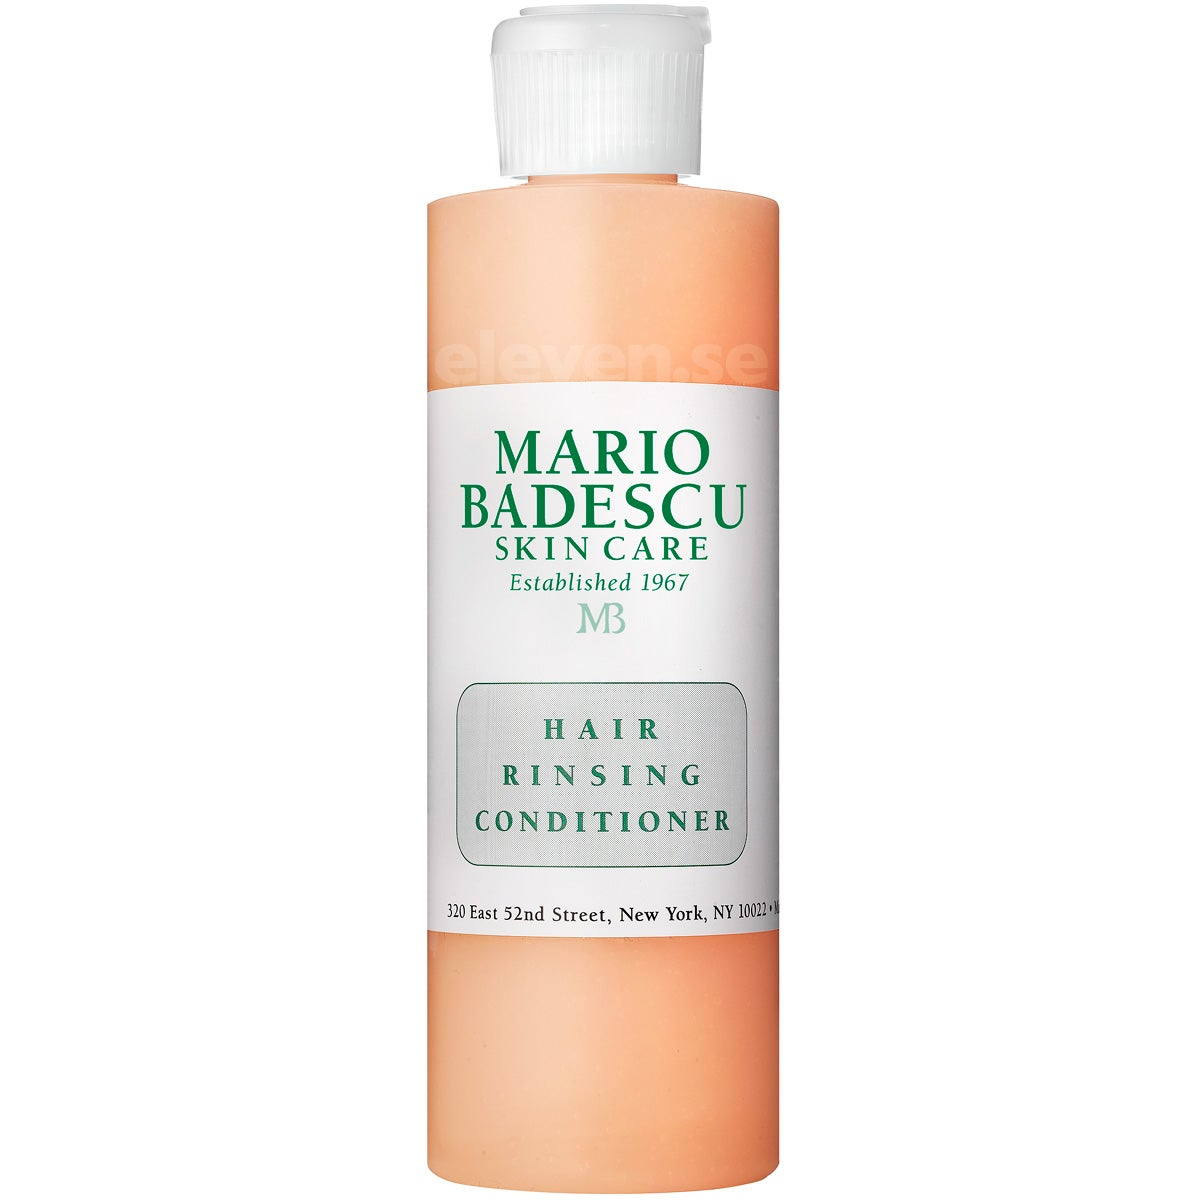 Hair Rinsing Conditioner